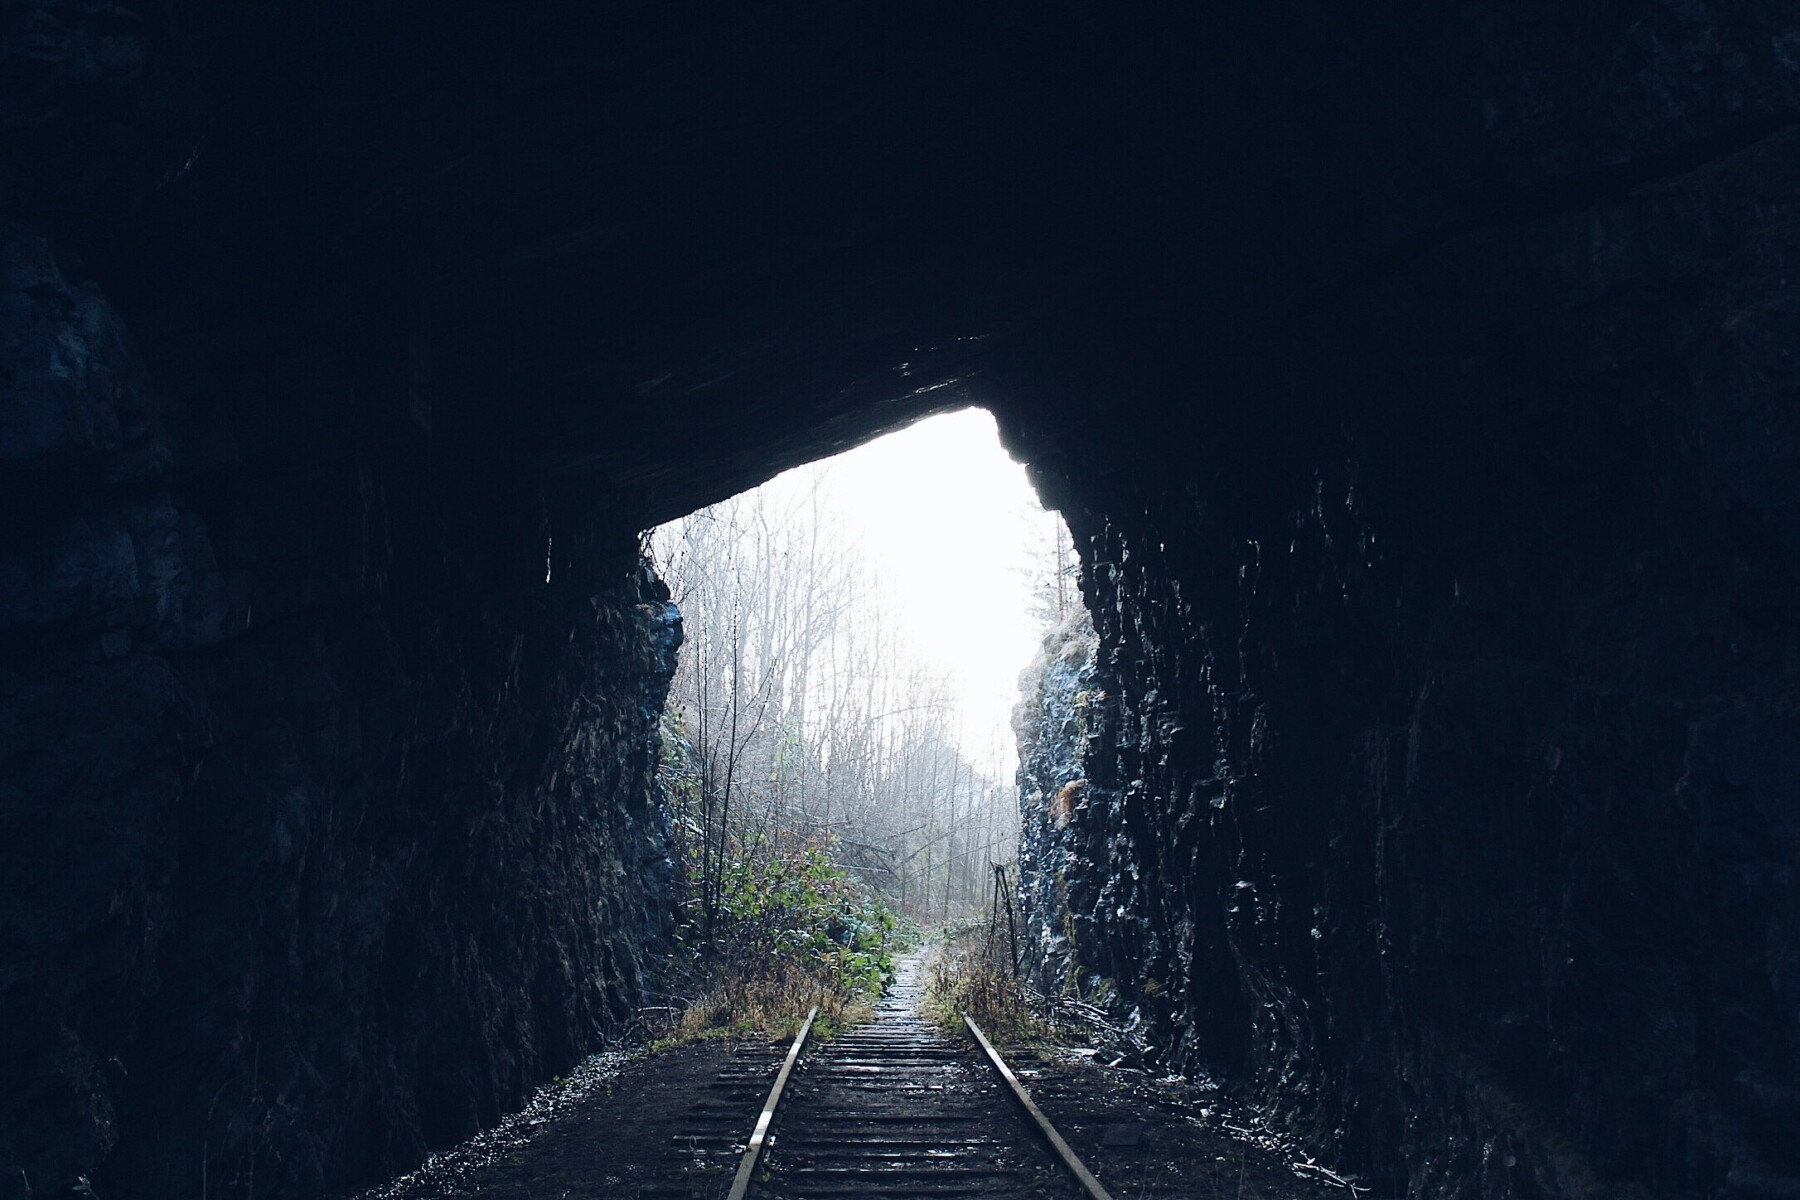 75% Point: Light at the End of the Tunnel 2